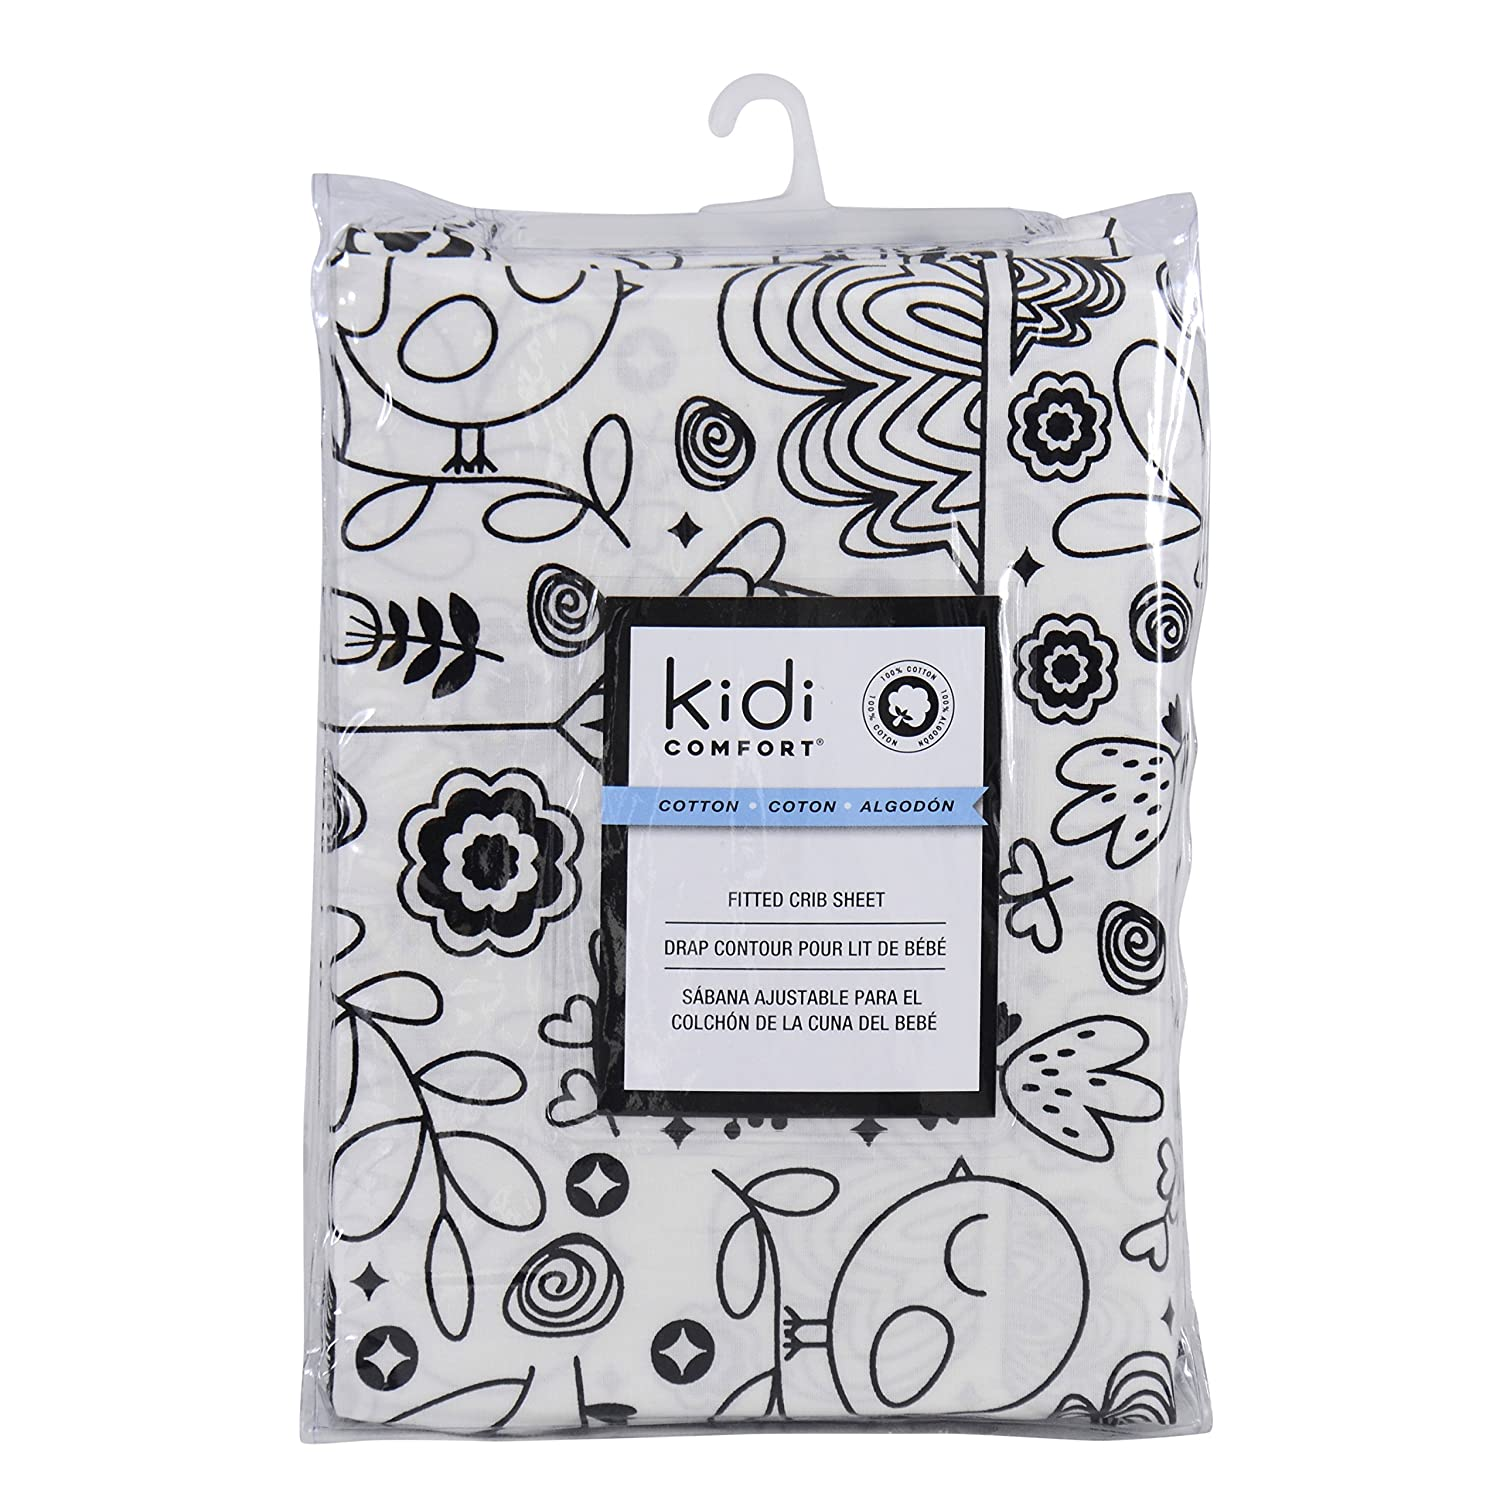 Kidiway 1560 kidicomfort Fitted Sheets - 100% Cotton - White